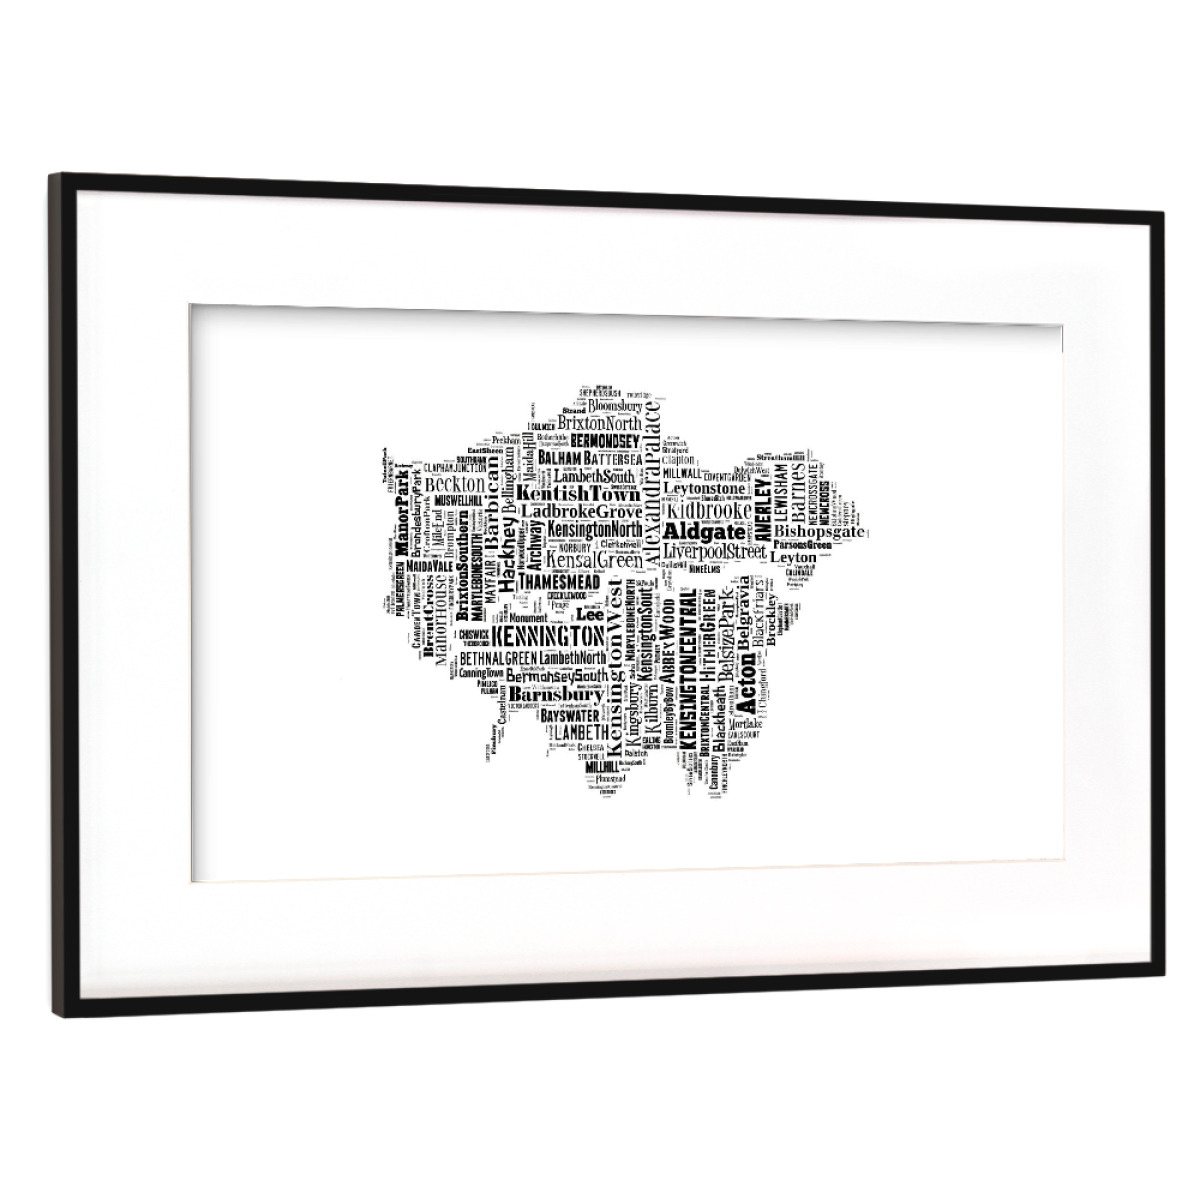 Purchase the London Map Black as a Frame at artboxONE